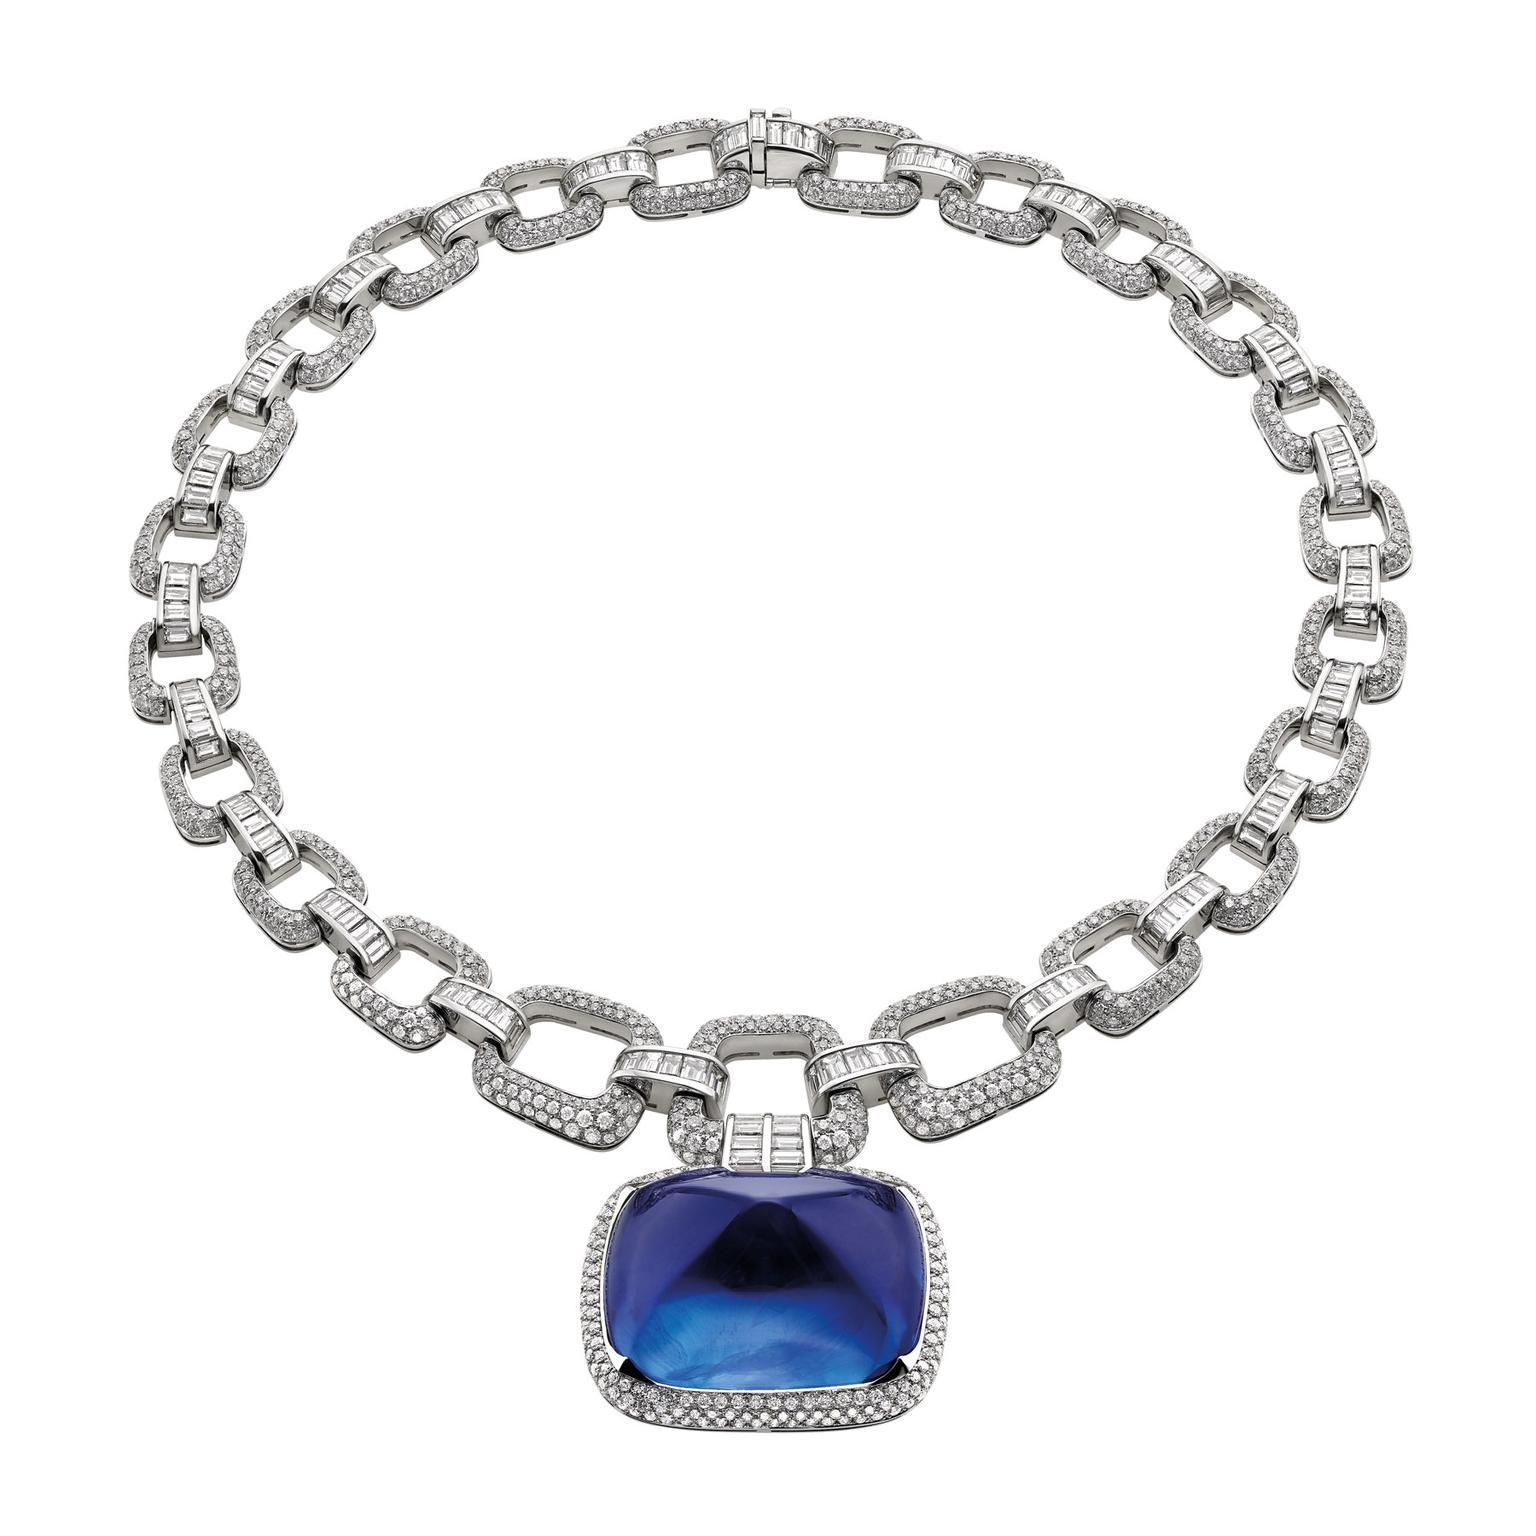 Bulgari S Burmese Cabochon Blue Sapphire Necklace From The